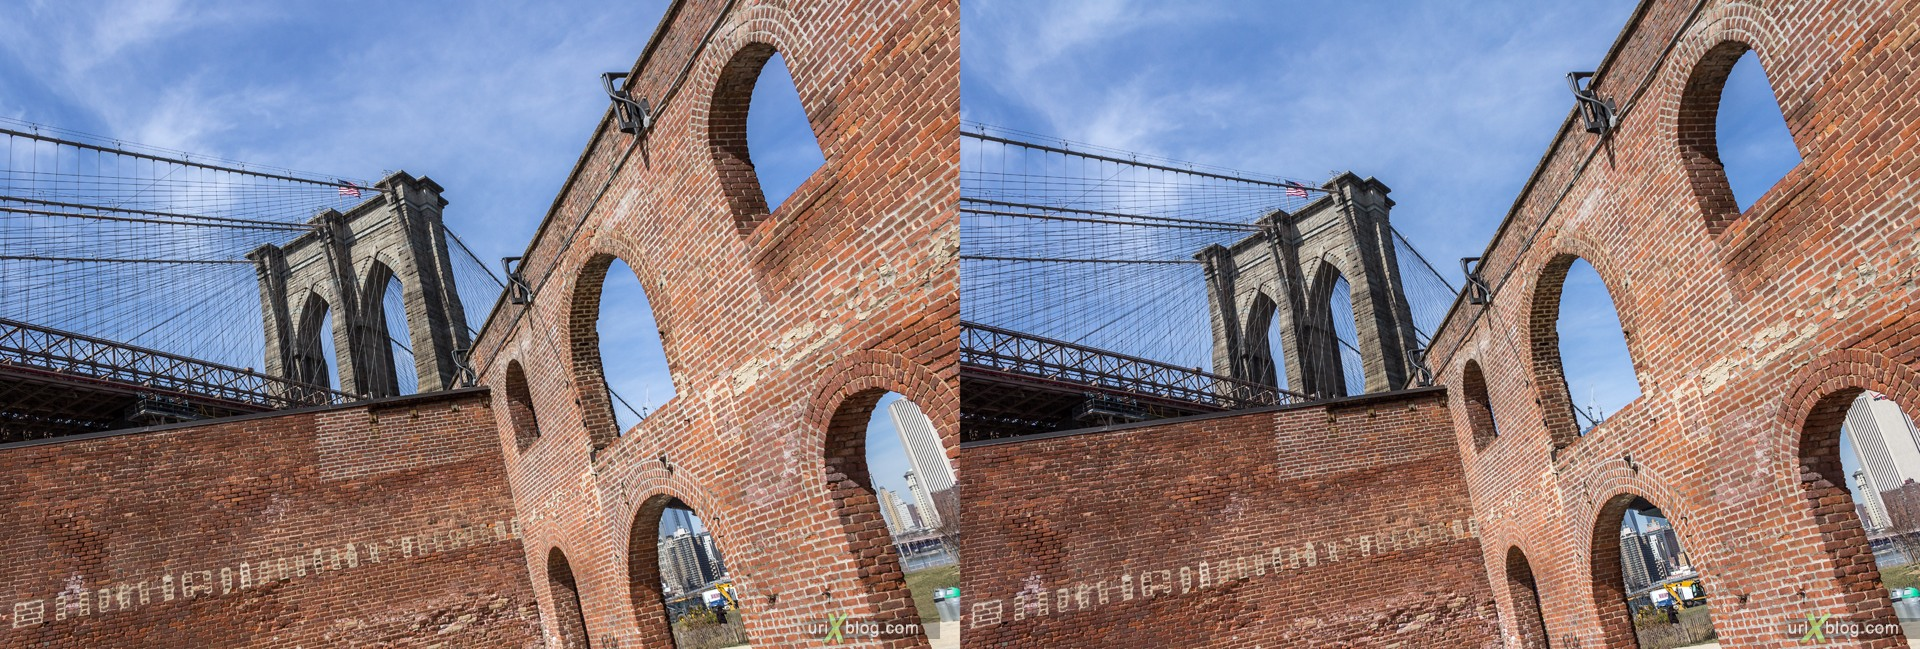 2013, Brooklyn, NYC, New York City, USA, 3D, stereo pair, cross-eyed, crossview, cross view stereo pair, stereoscopic